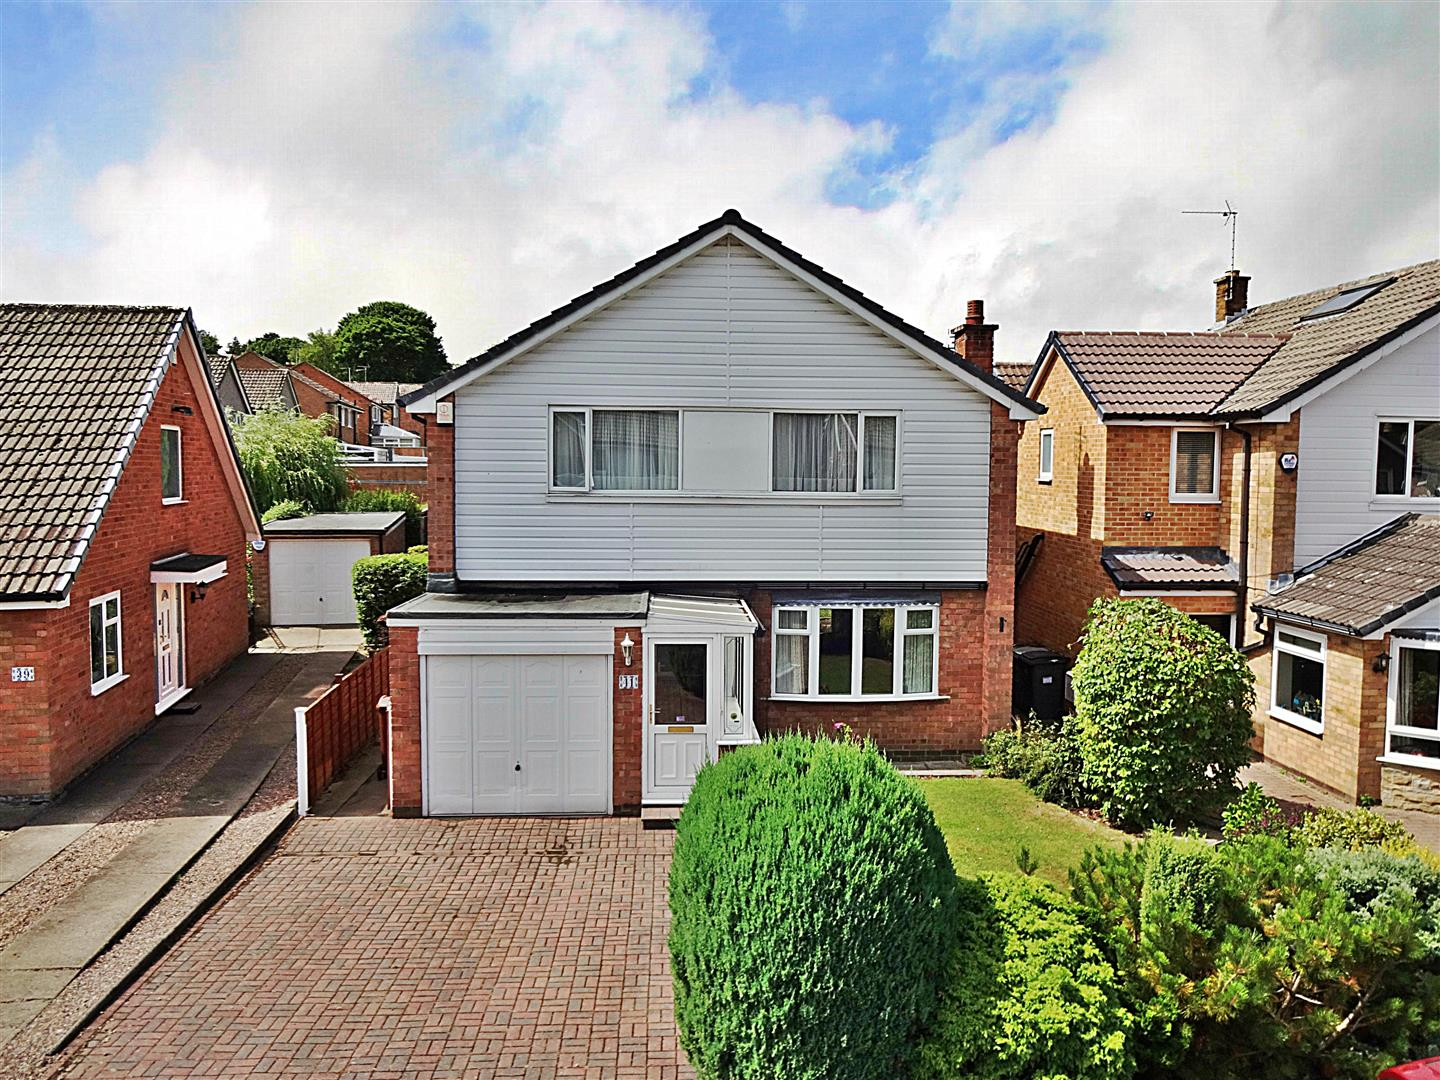 Fieldhead Drive, Guiseley, LS20 8DX